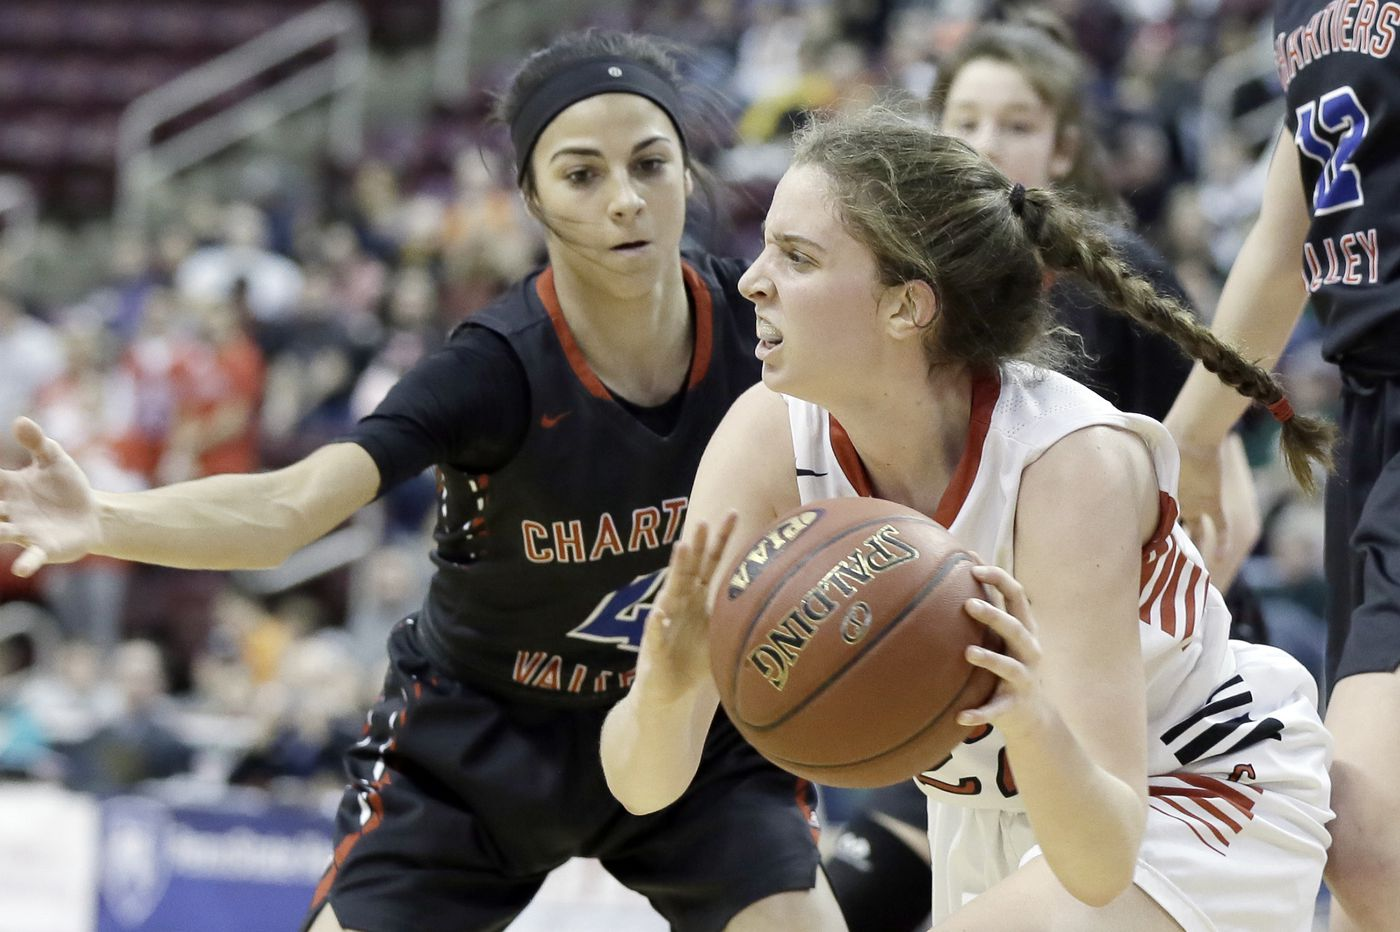 Girls' basketball: Philadelphia Catholic League to split in two divisions